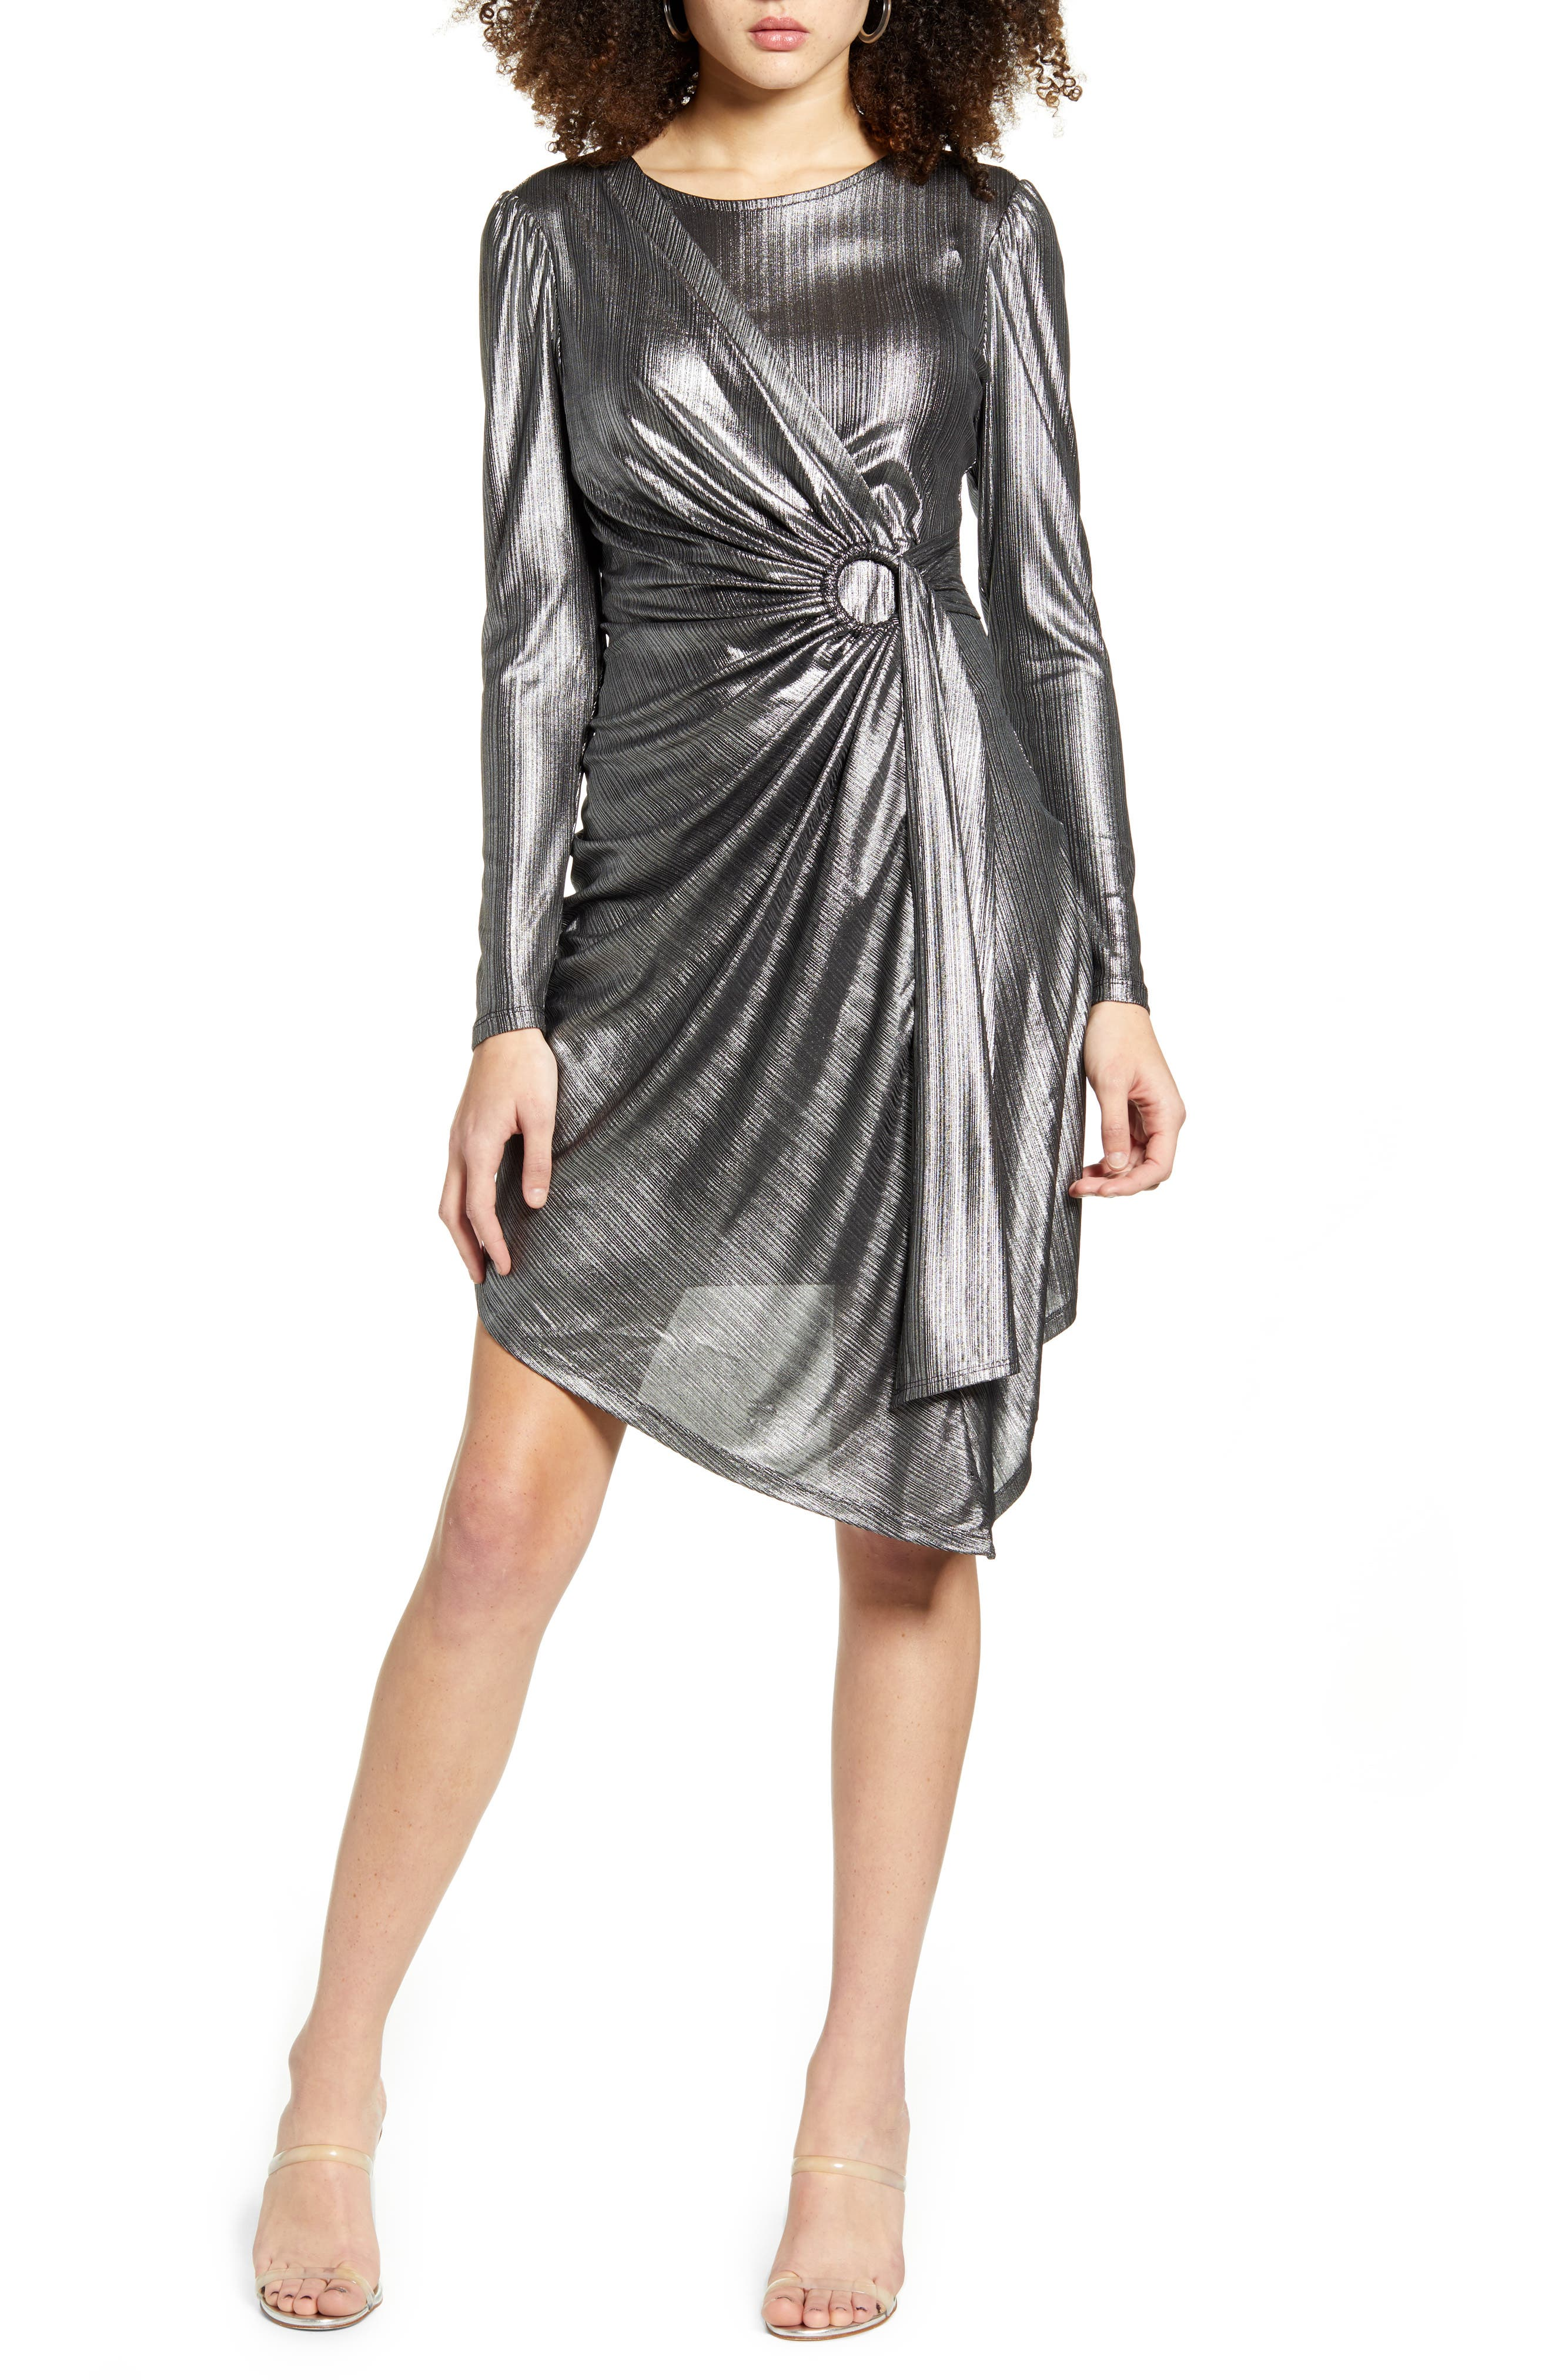 70s Prom, Formal, Evening, Party Dresses Womens Leith Metallic Stripe Long Sleeve Asymmetrical Dress $44.98 AT vintagedancer.com